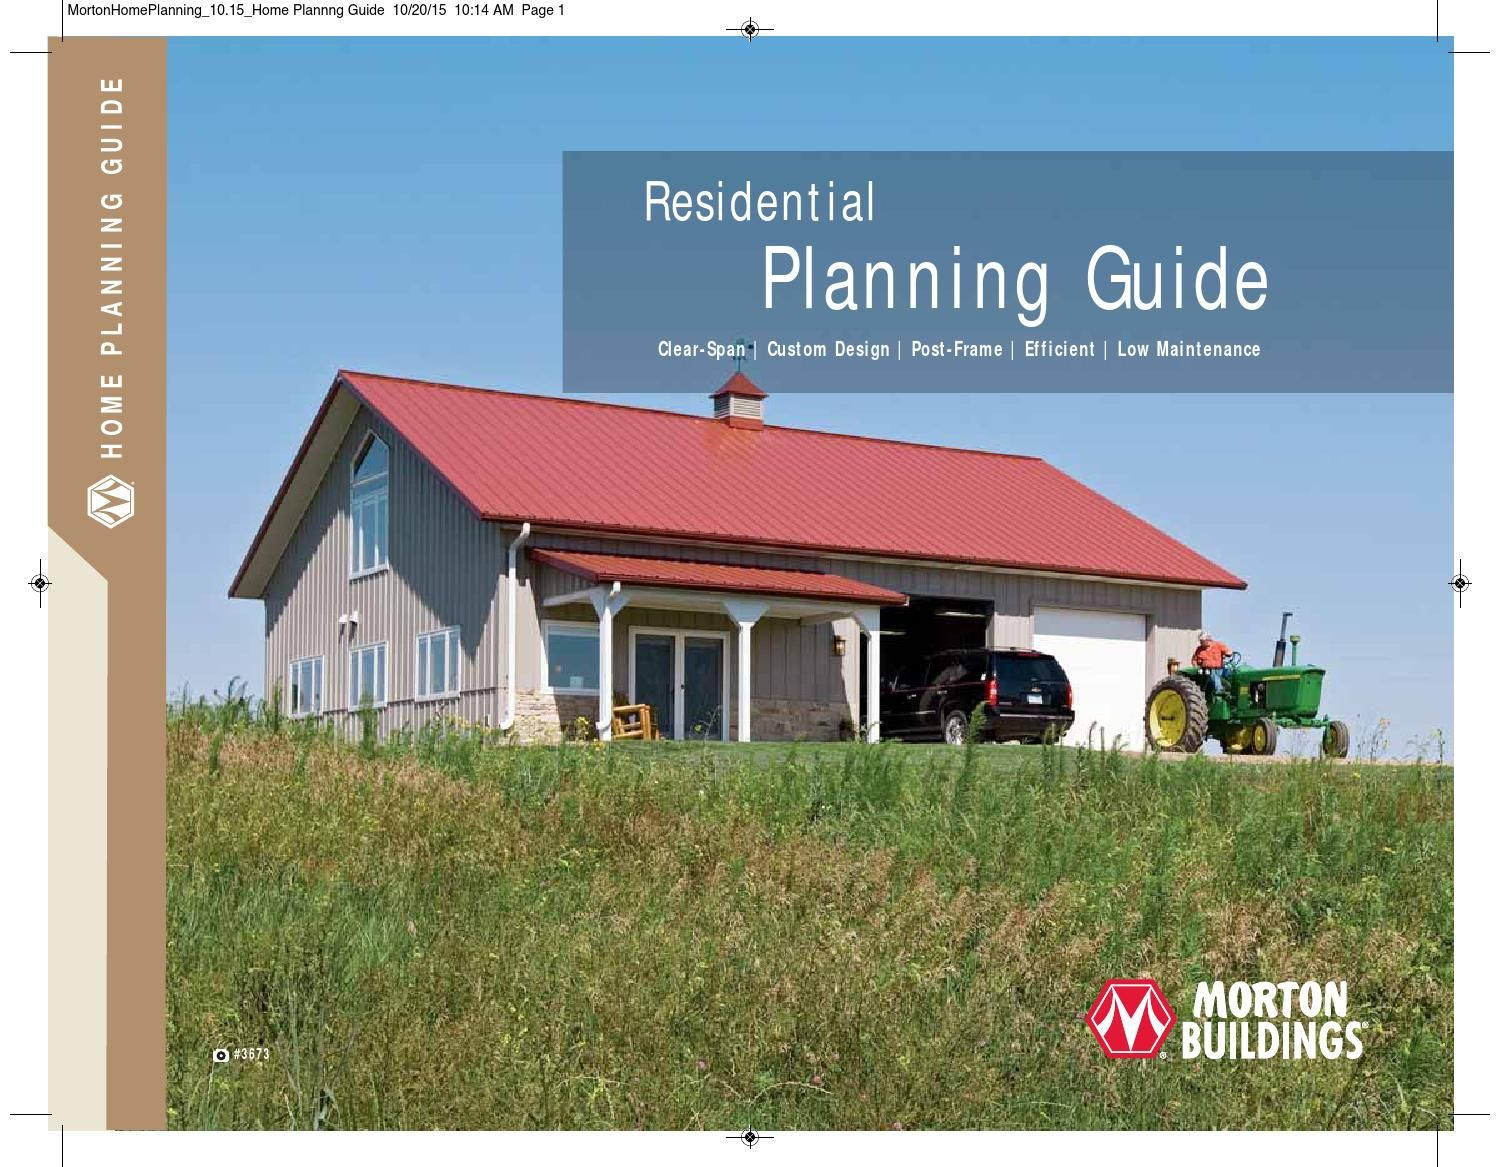 Morton buildings residential planning guide home plans for Pole barn residential homes